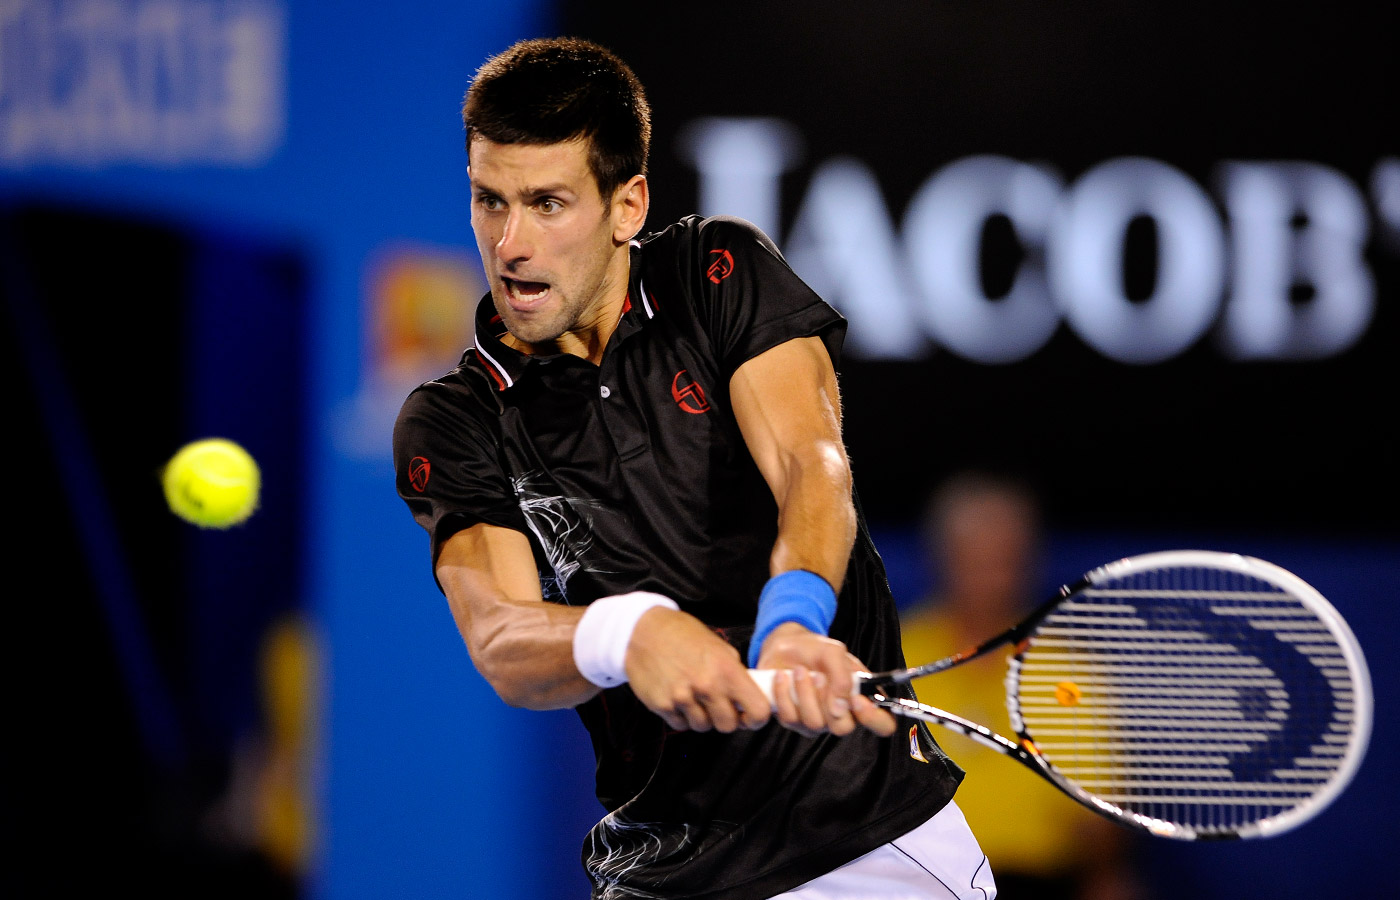 Djokovic backhand